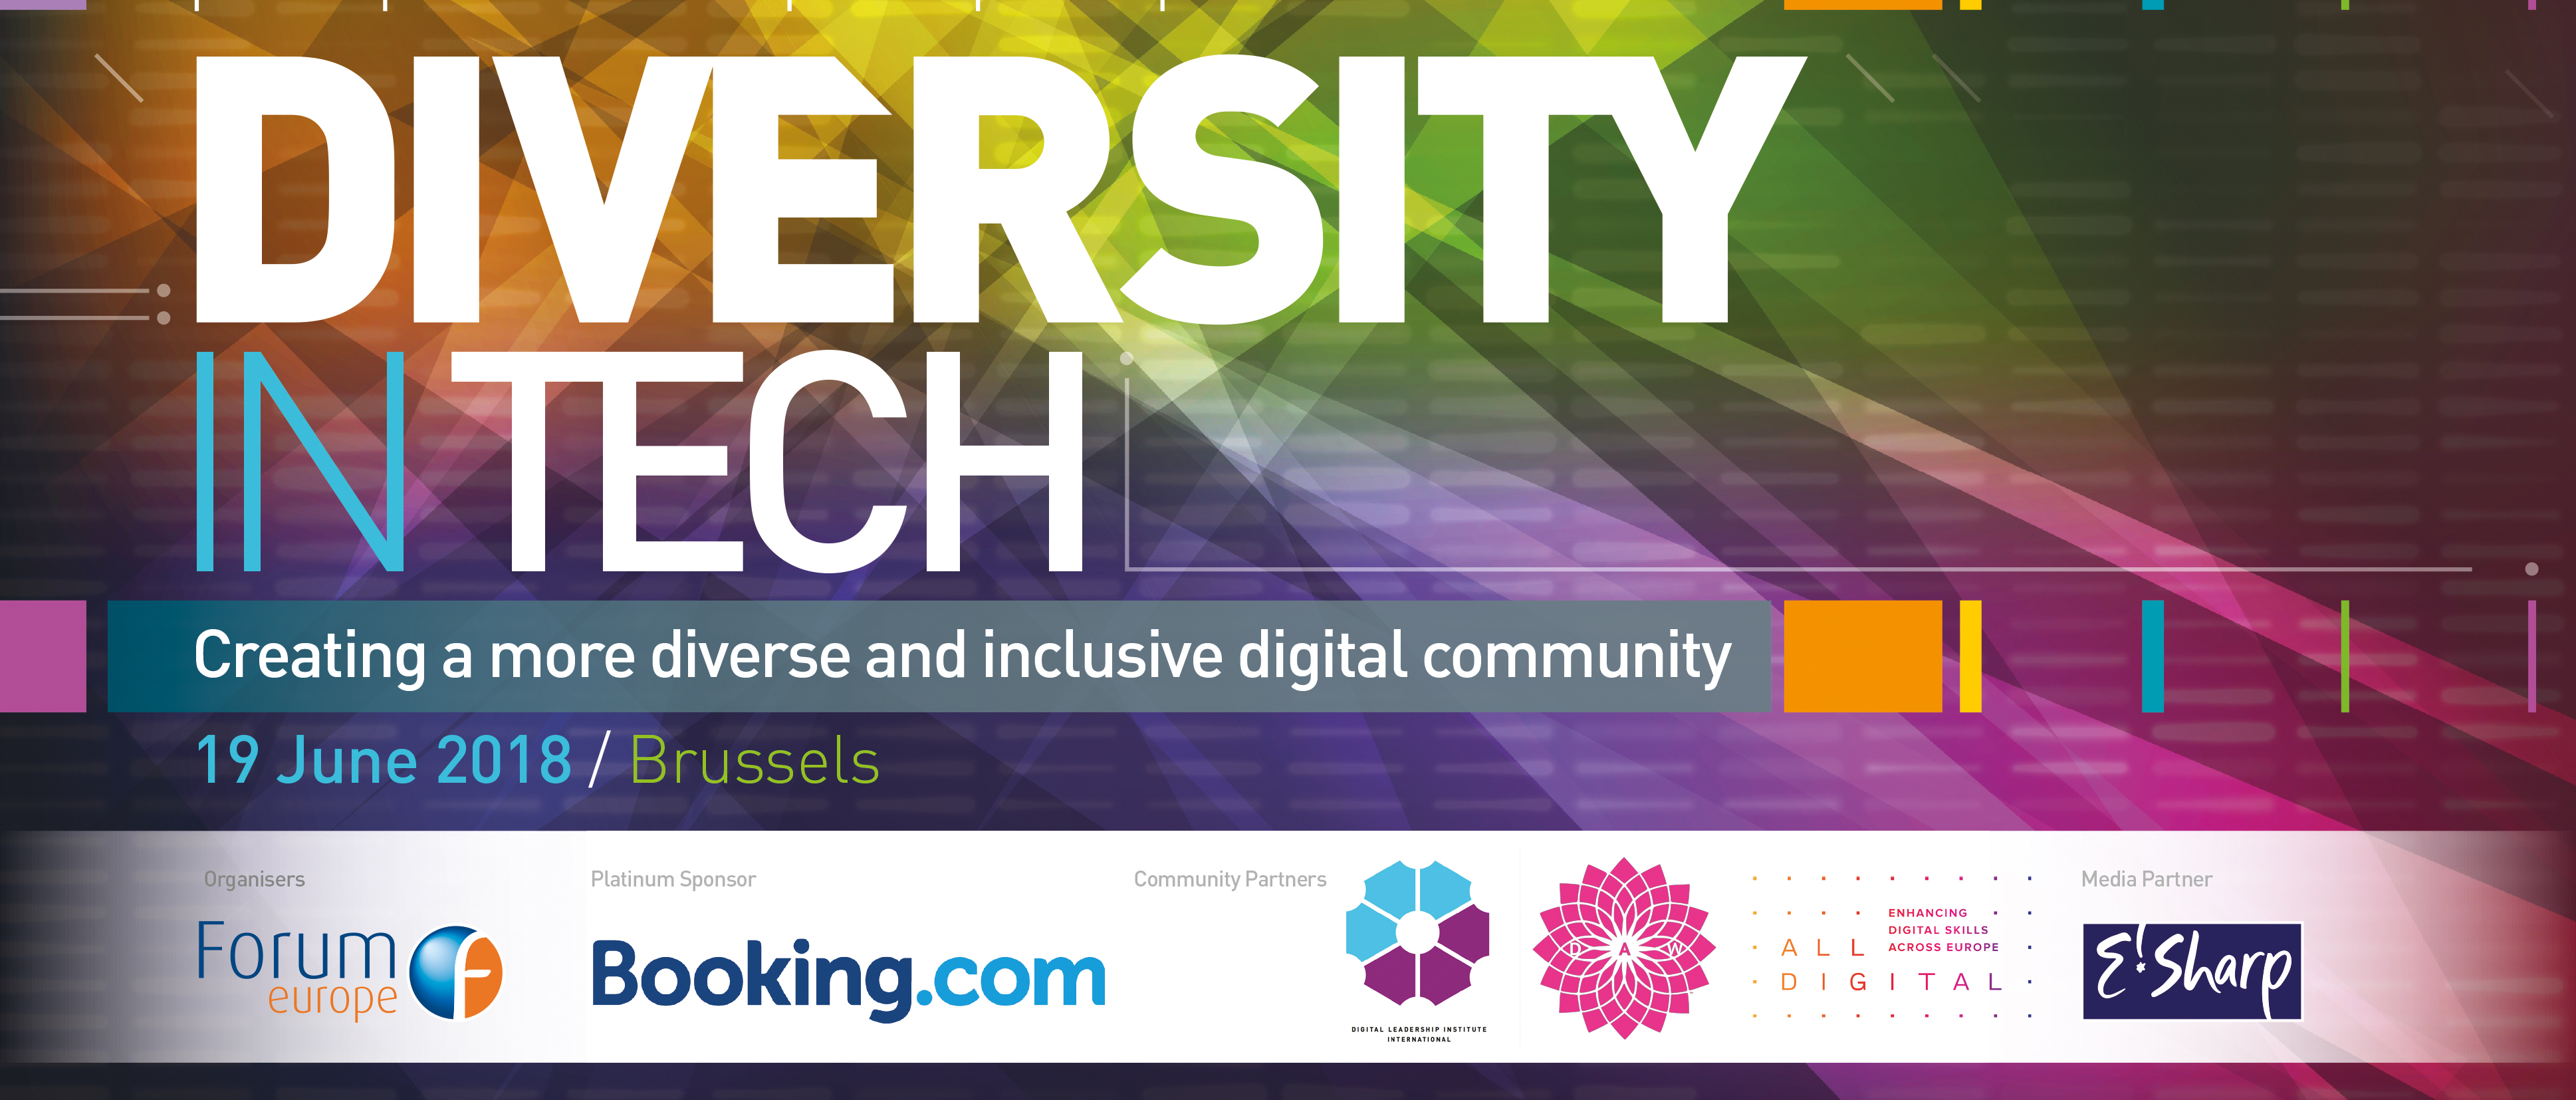 Diversity in Tech - Creating a more diverse and inclusive digital community